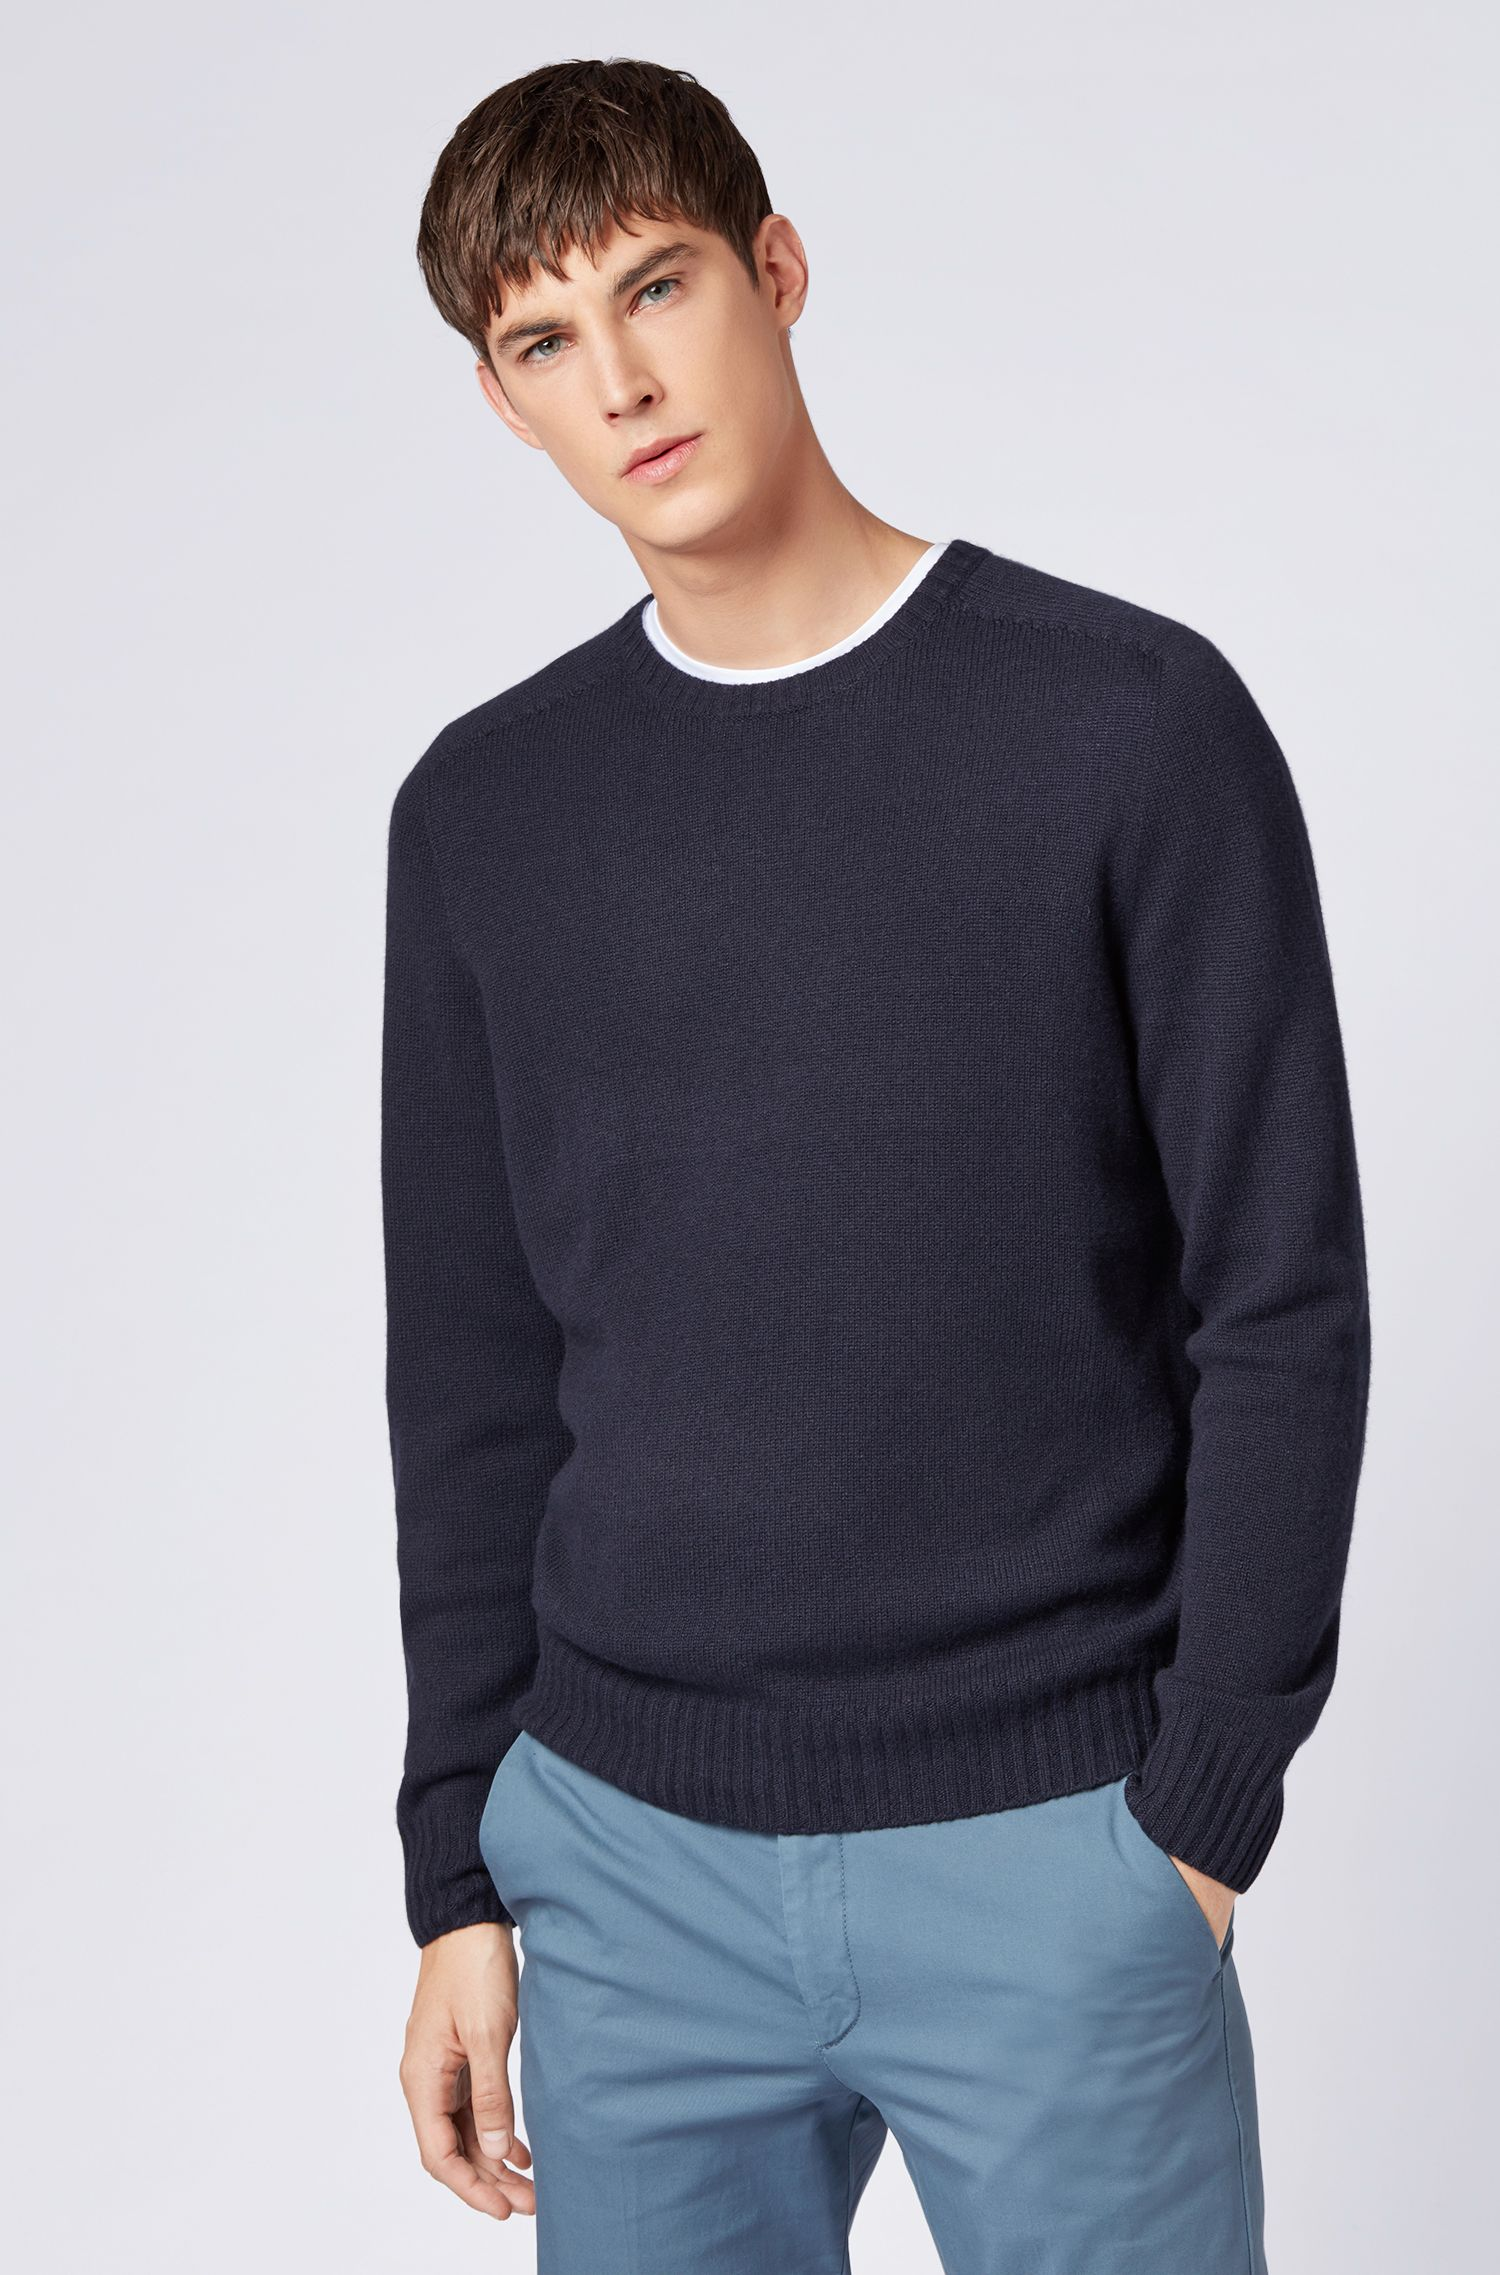 Cashmere sweater with seam-free design, Blue